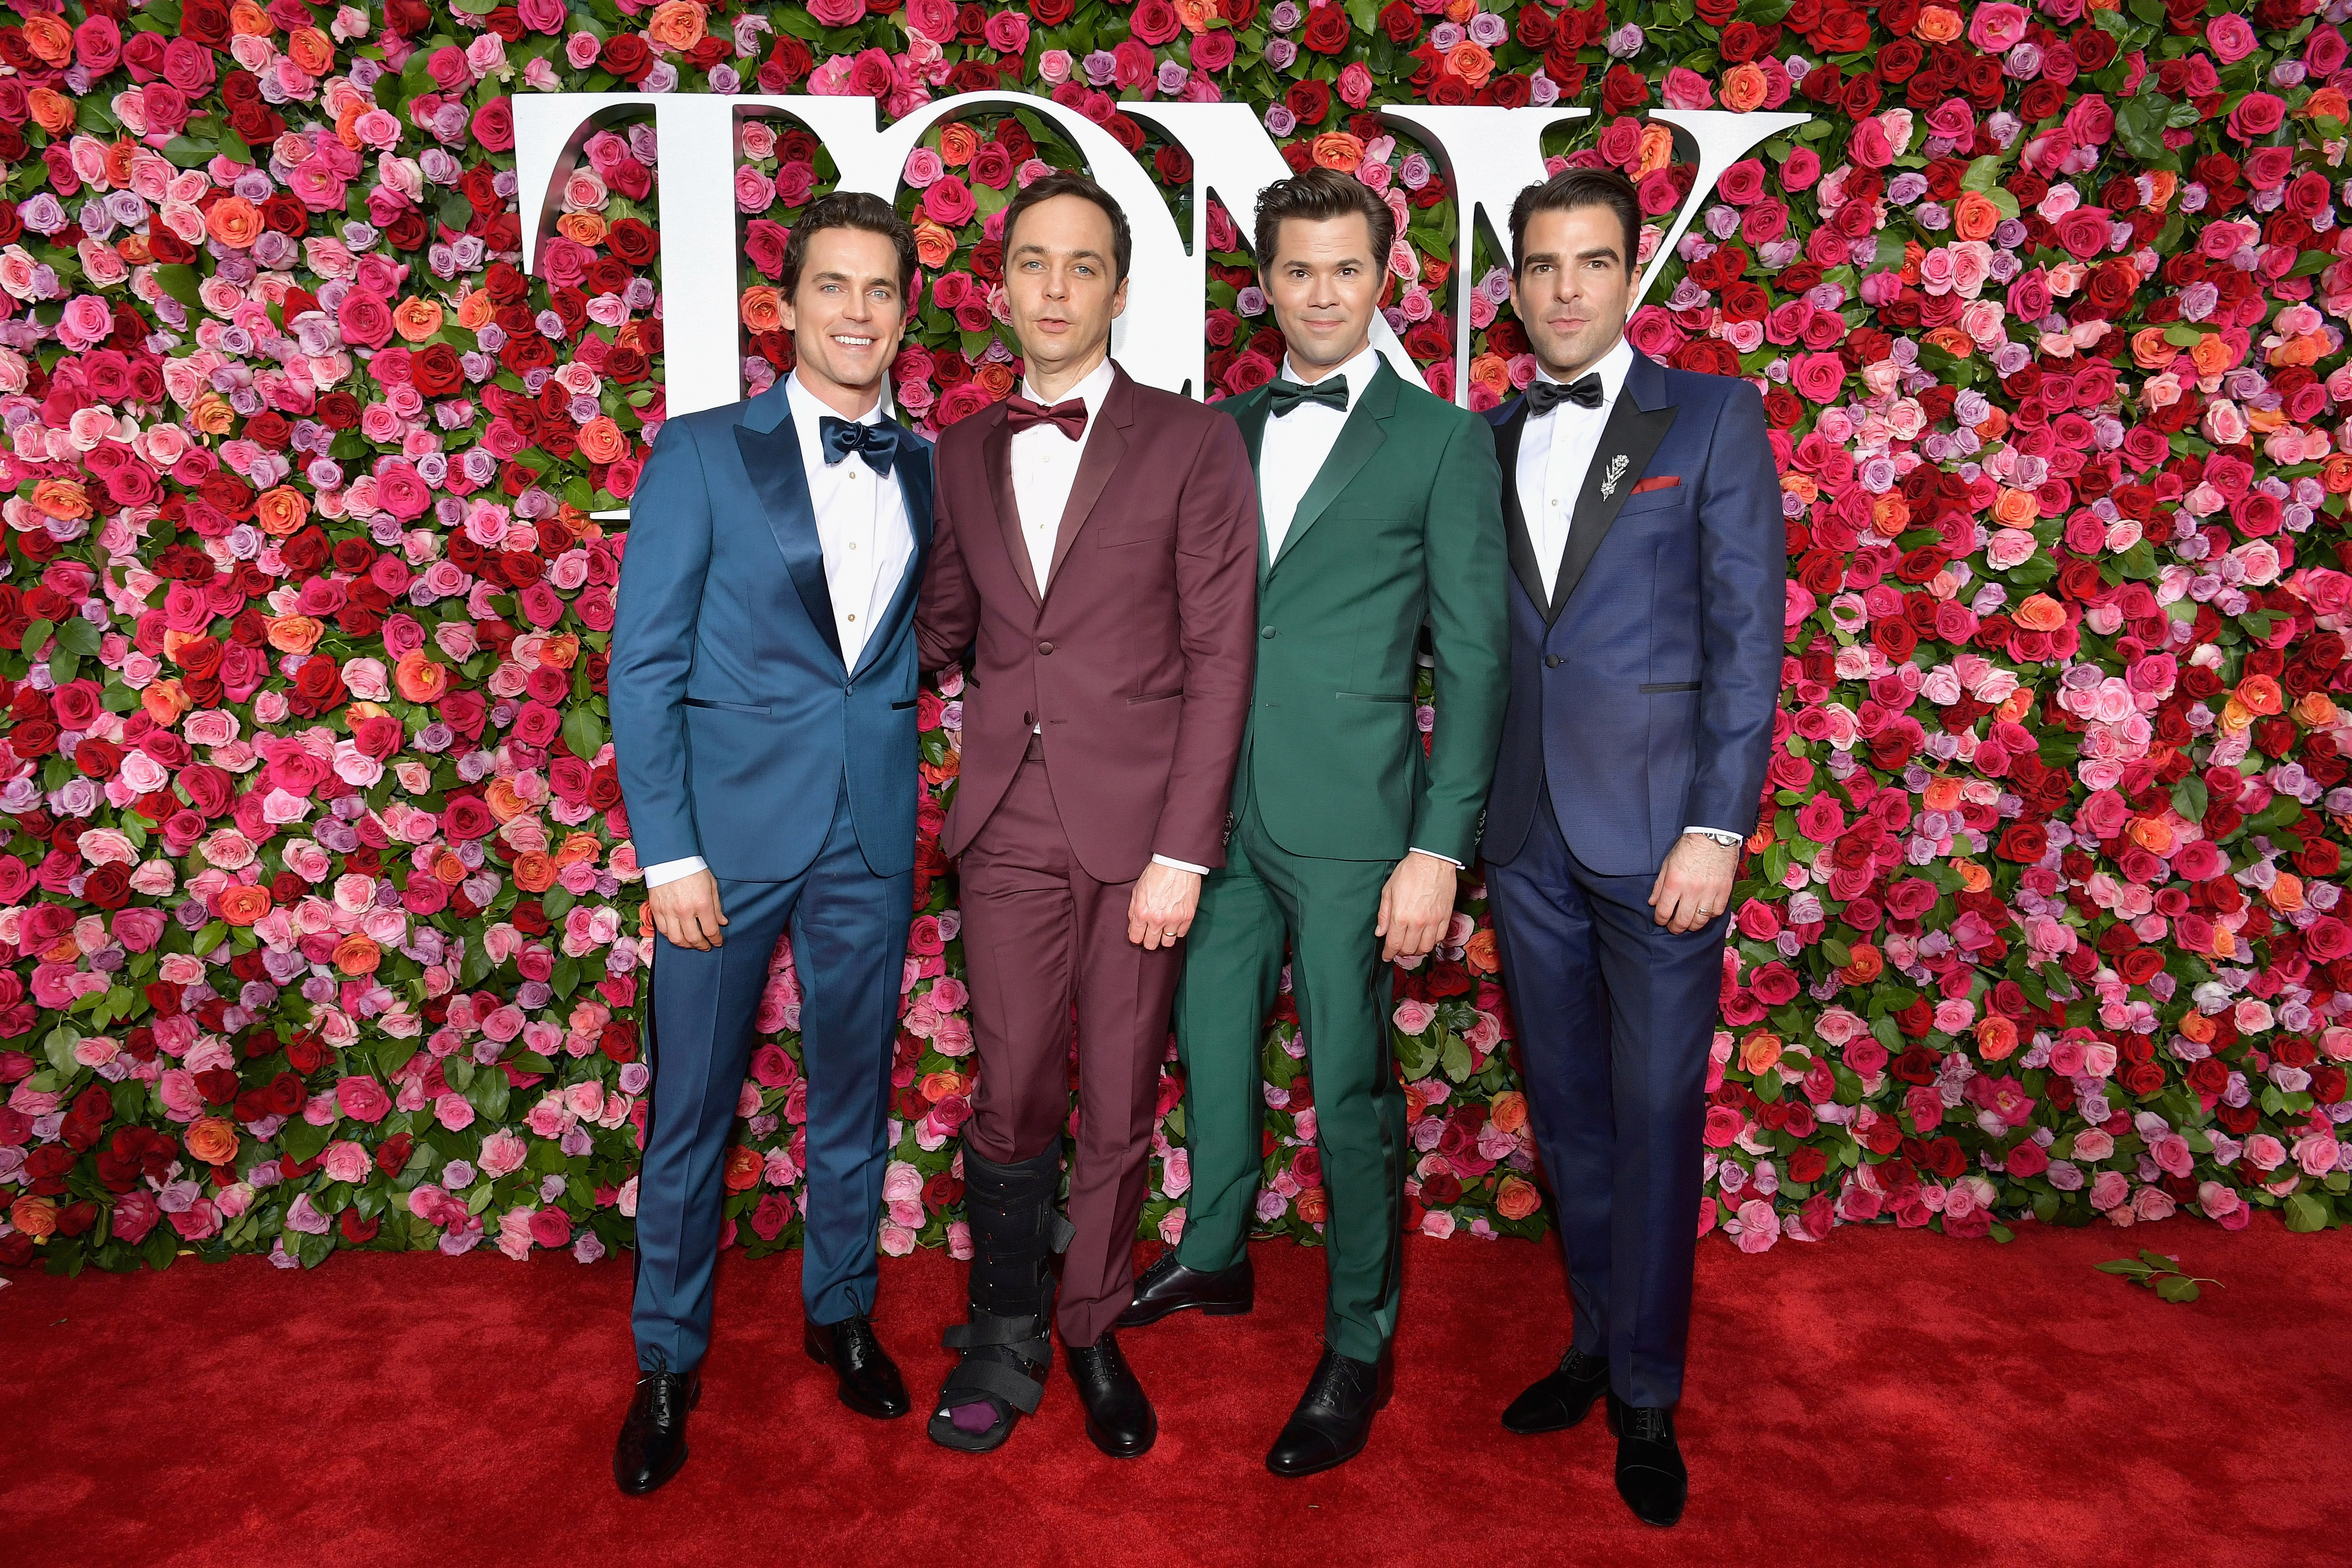 Matt Bomer, Jim Parsons, Andrew Rannells and Zachary Quinto attend the 72nd Annual Tony Awards at Radio City Music Hall in New York City on June 10, 2018.